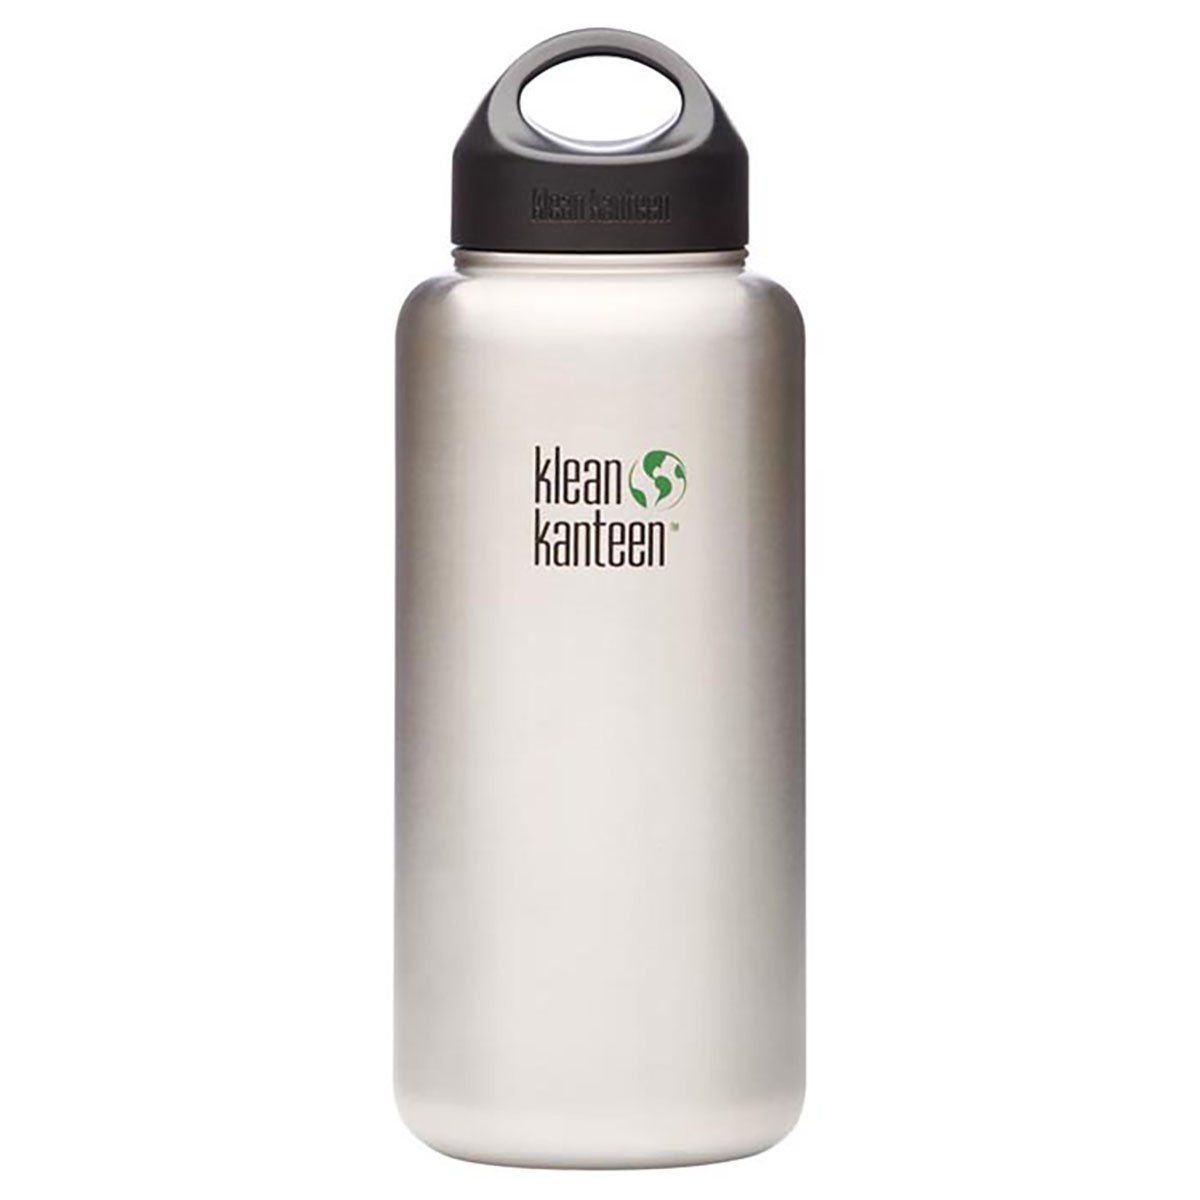 Klean Kanteen Wide Single Wall Bottle with Loop Cap Brushed Stainless